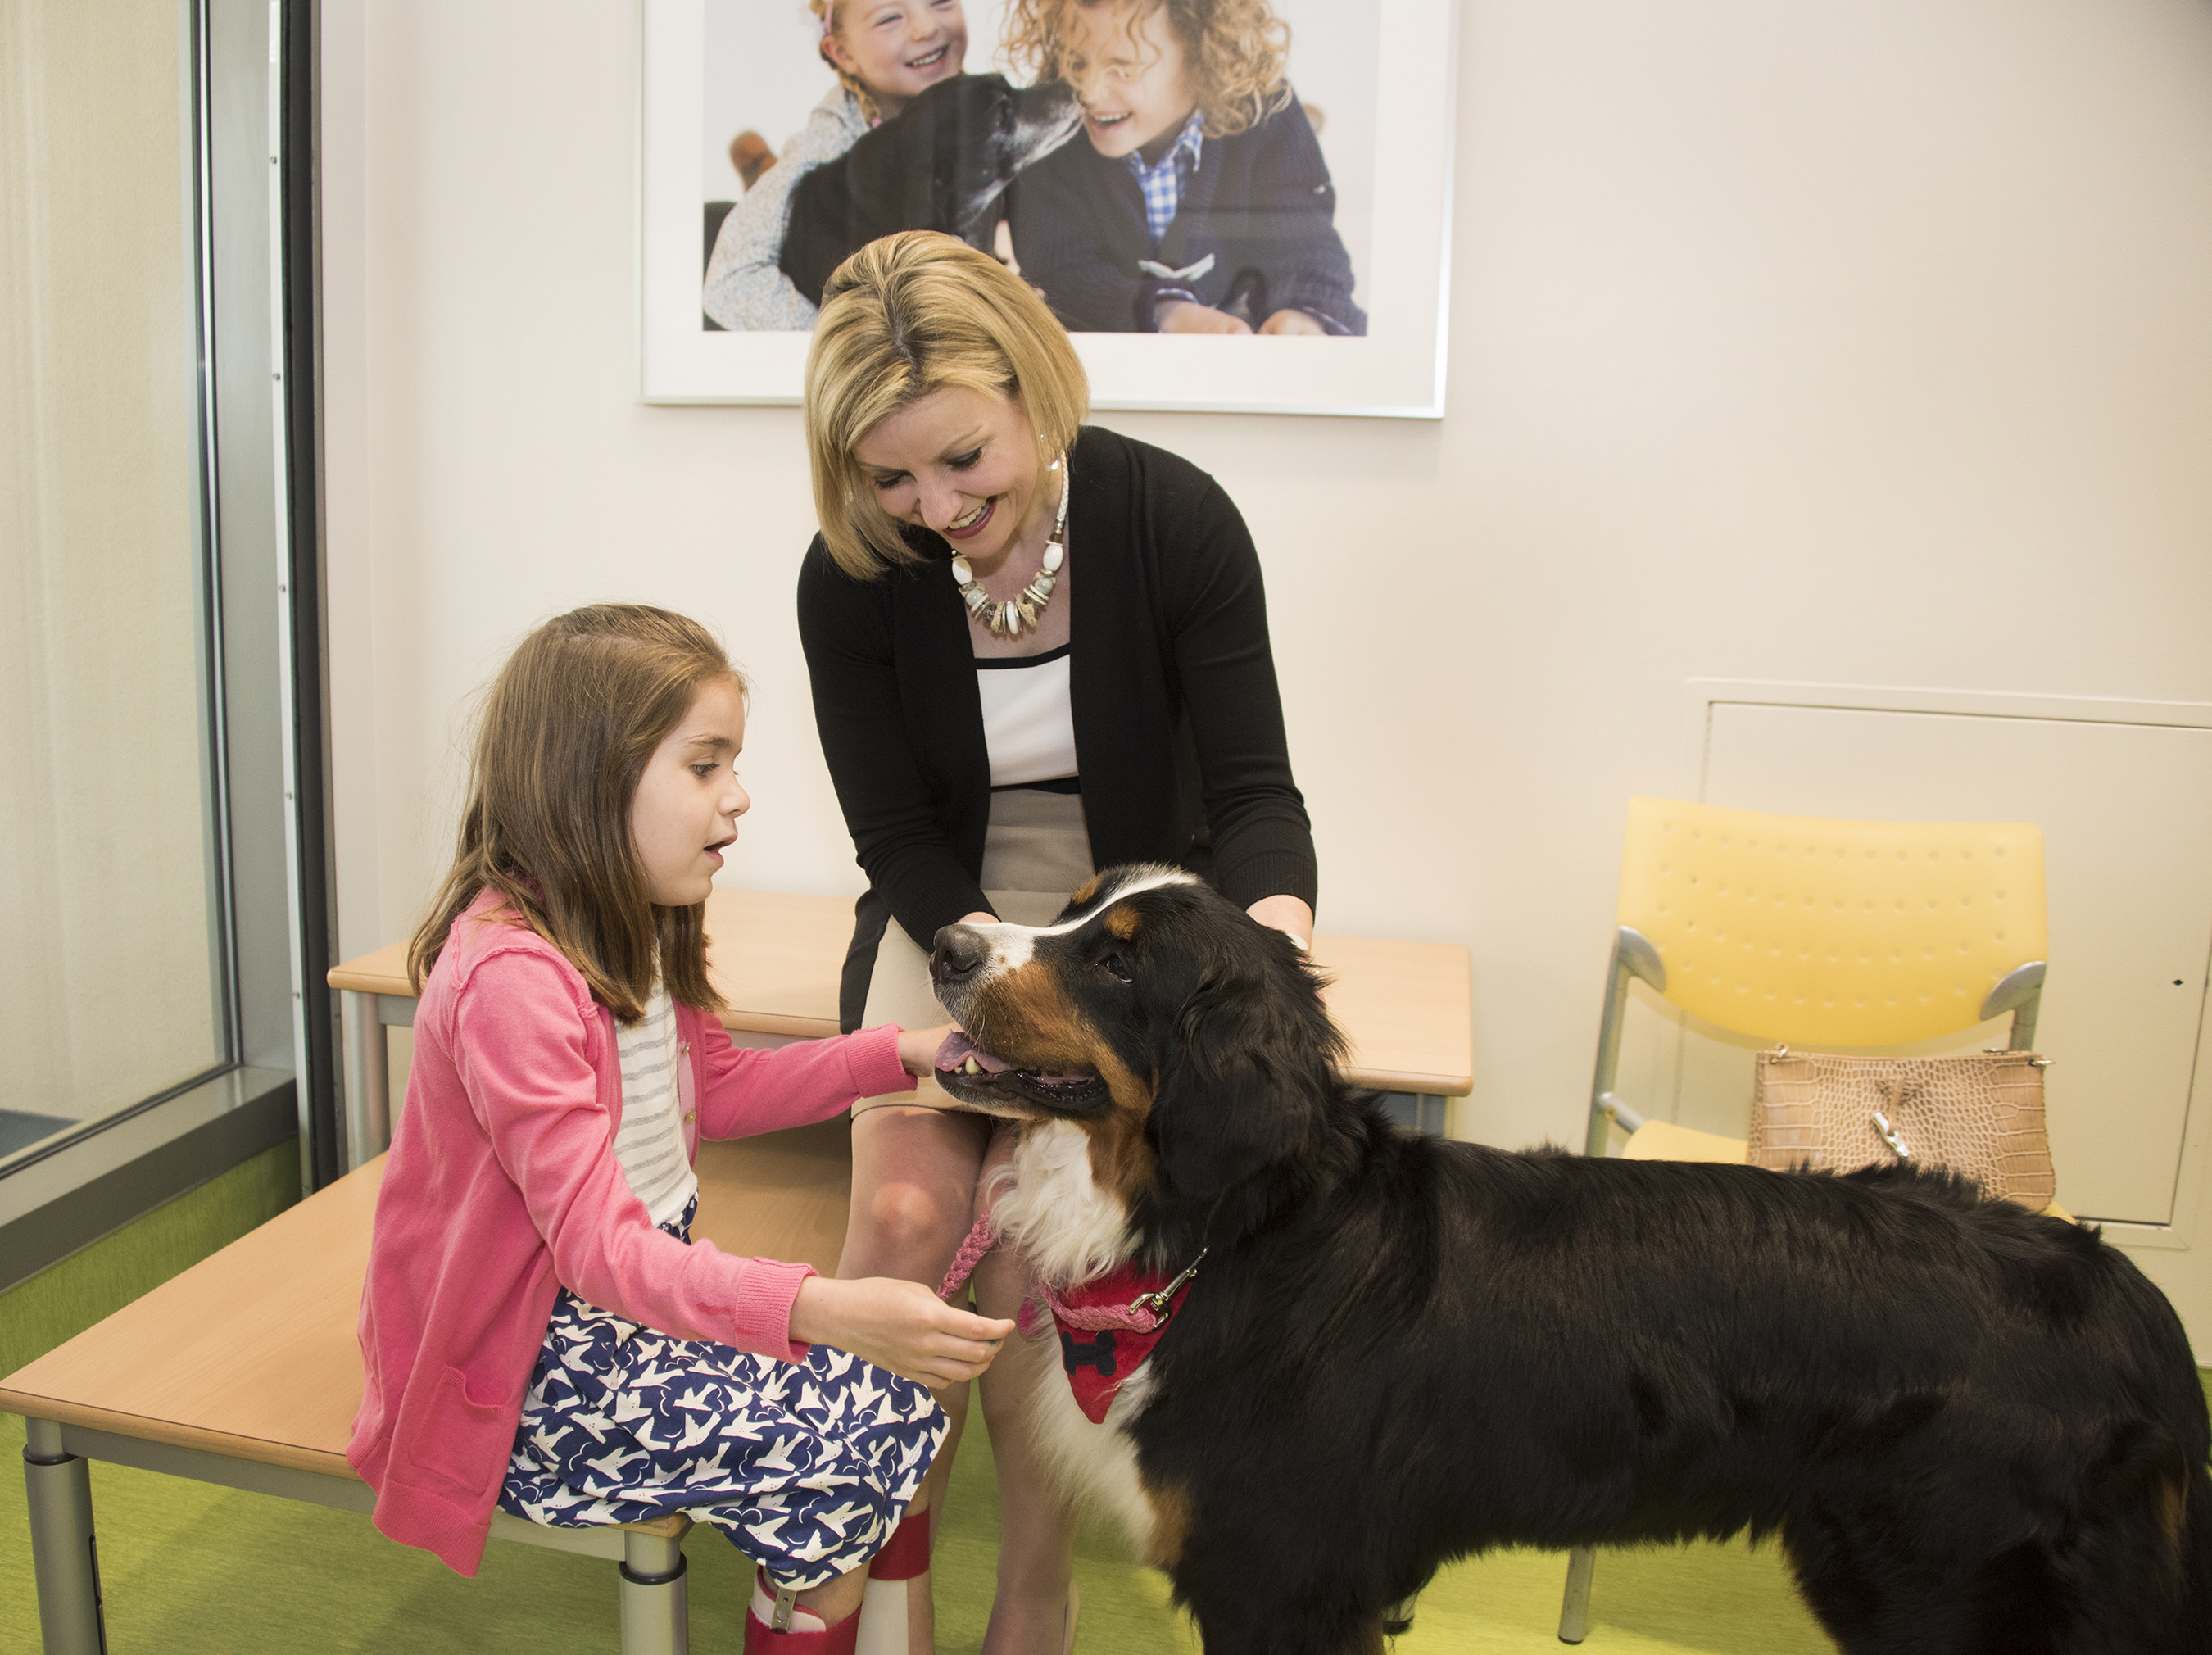 Purina veterinarian Dr. Zara Boland and her dog Rhumba visiting Annie, a St. Louis Children's Hospital patient, in the newly opened Purina Family Pet Center.